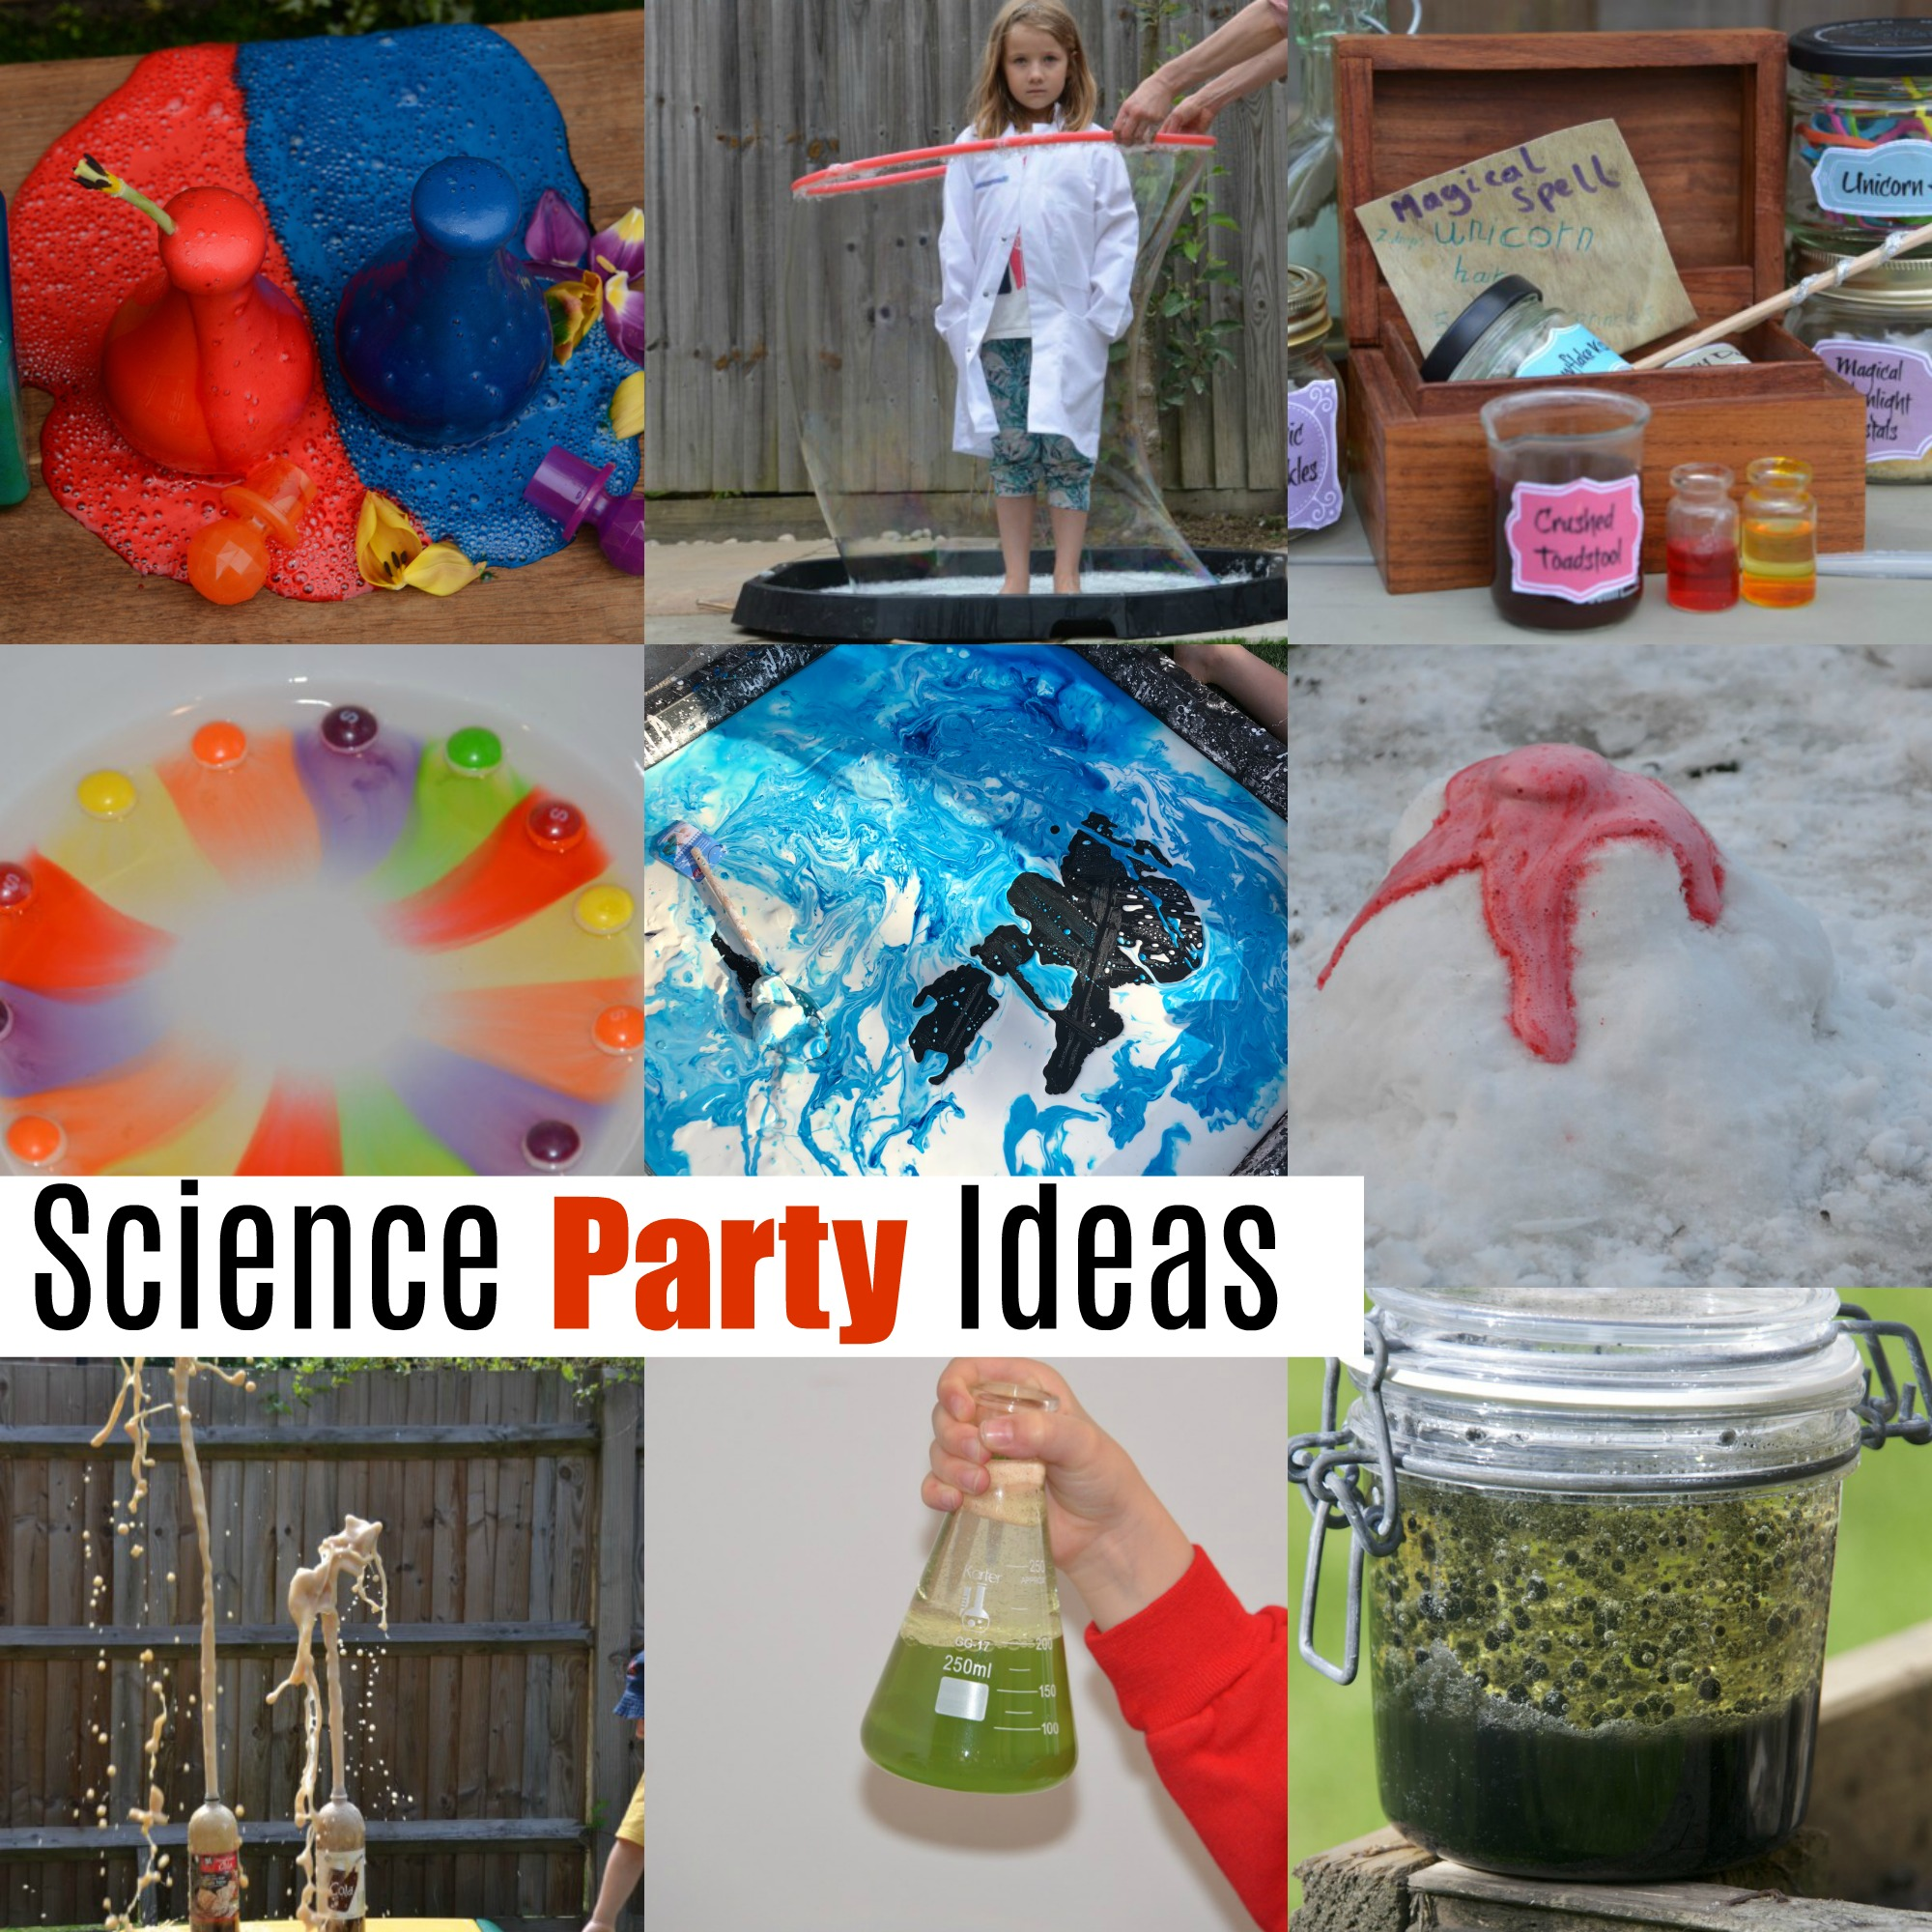 Science Facts Christmas: DIY Science Party Ideas For Kids